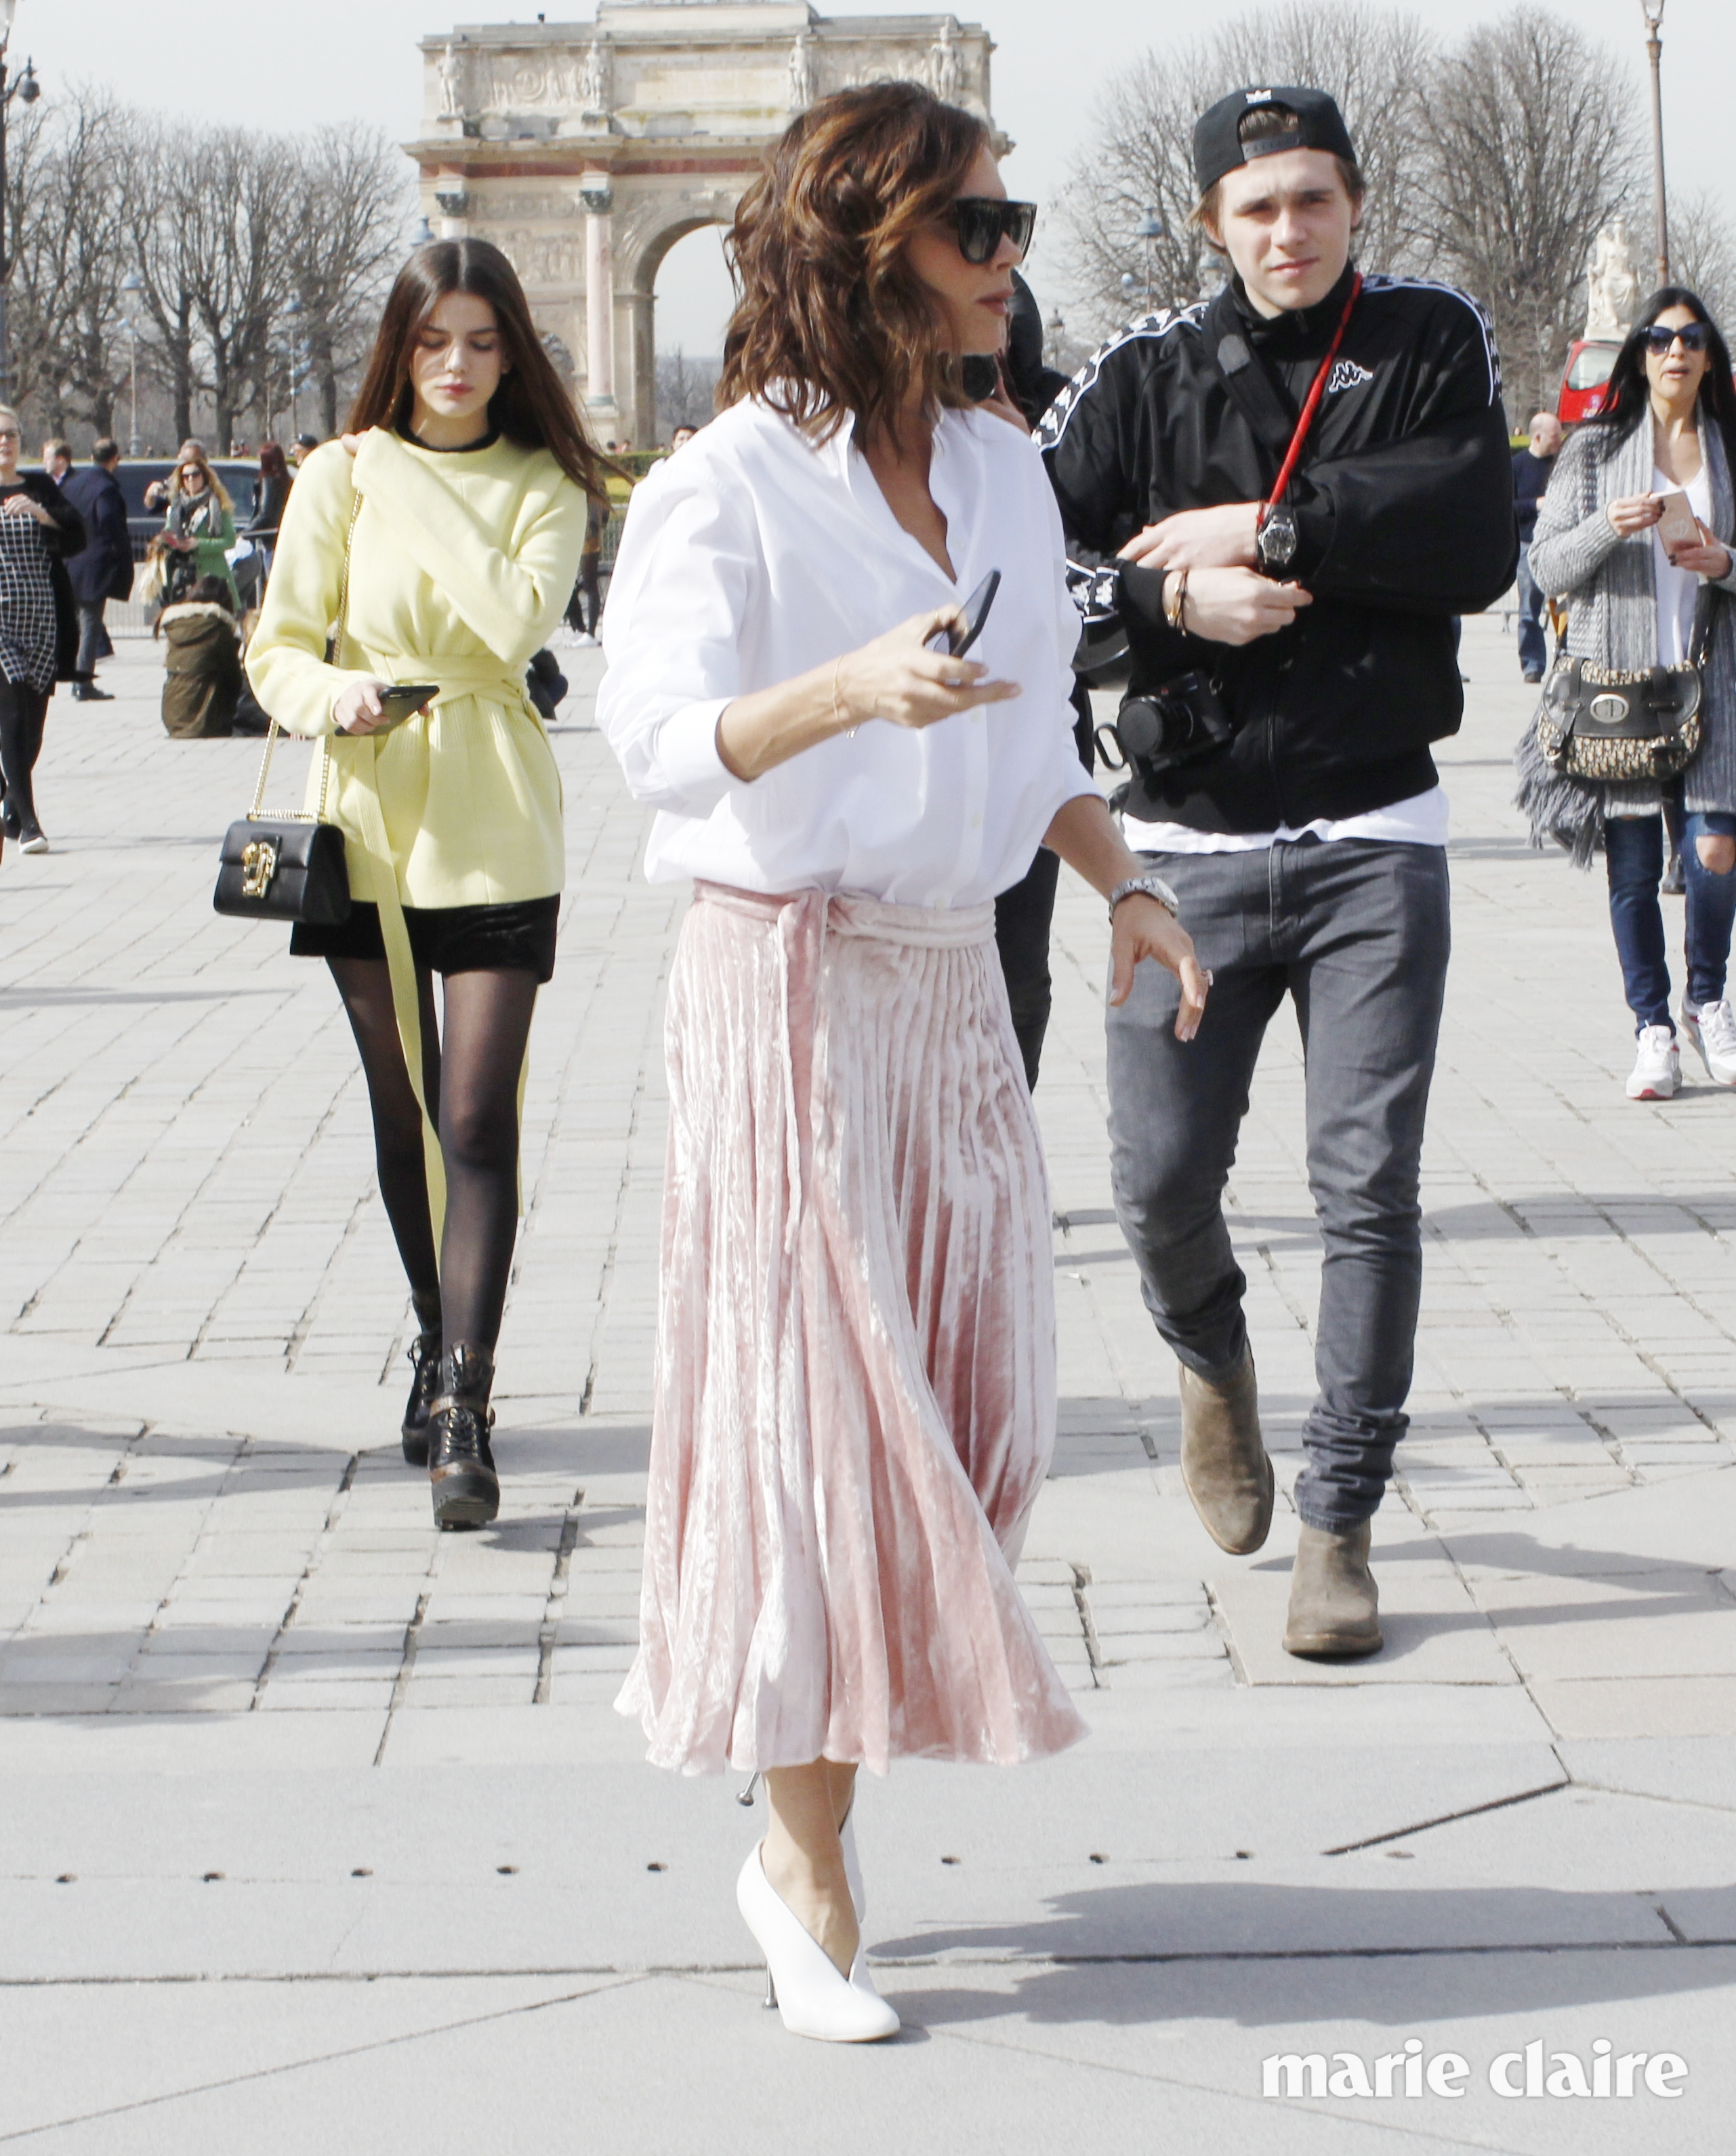 Victoria Beckham out and about with son Brooklyn Beckham and his ex-girlfriend Sonia Ben Ammar in Paris